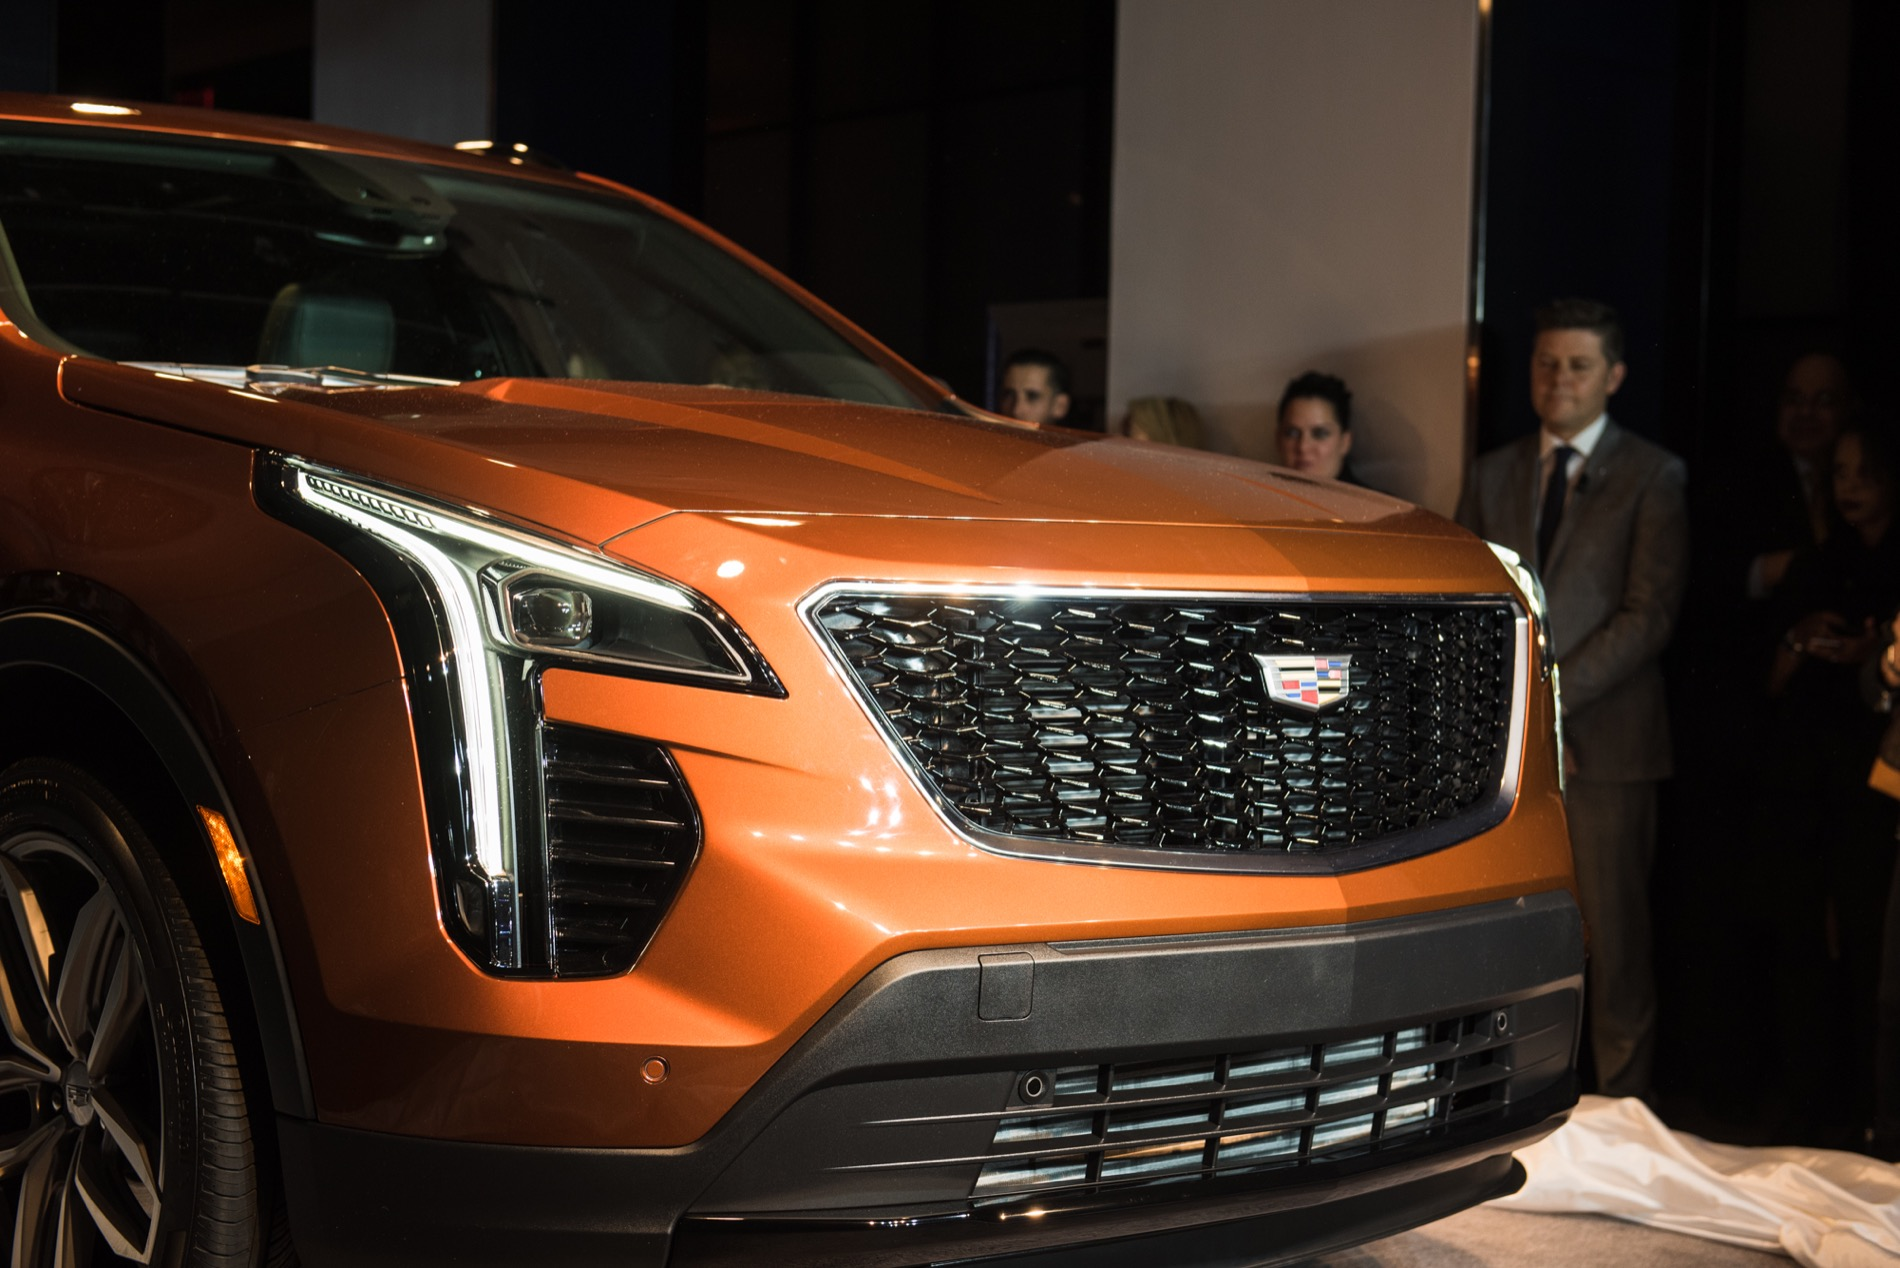 71 All New 2020 Spy Shots Cadillac Xt5 Specs and Review